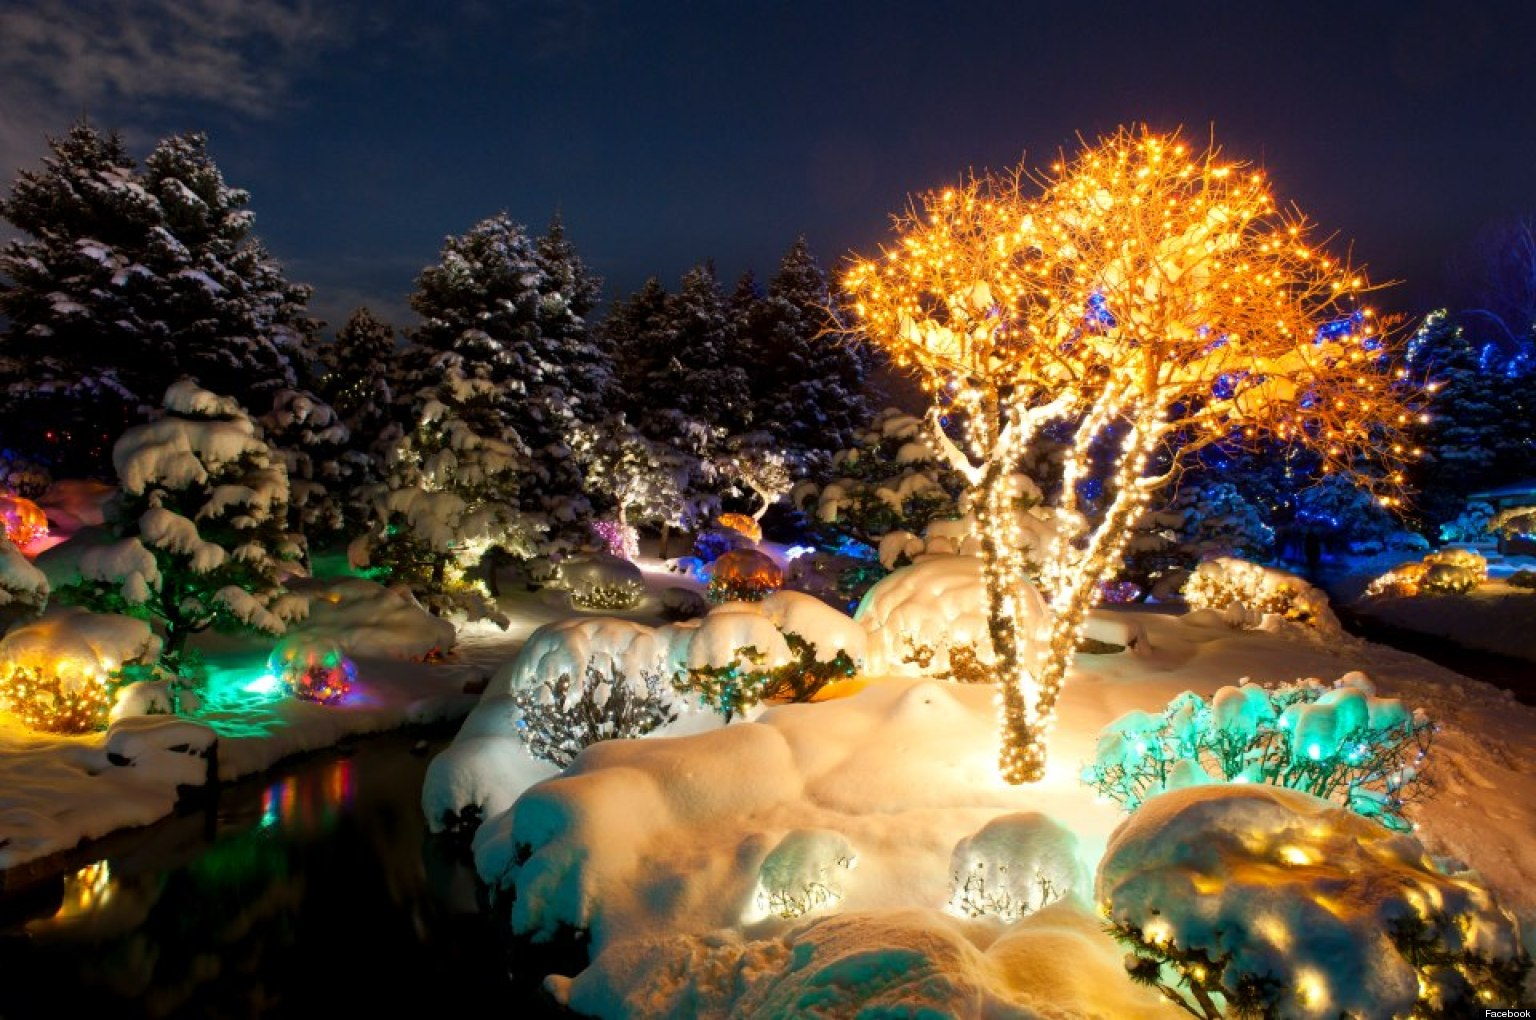 Blossoms Of Light White Christmas A 1940s Christmas Ball And More Things To Do In Denver